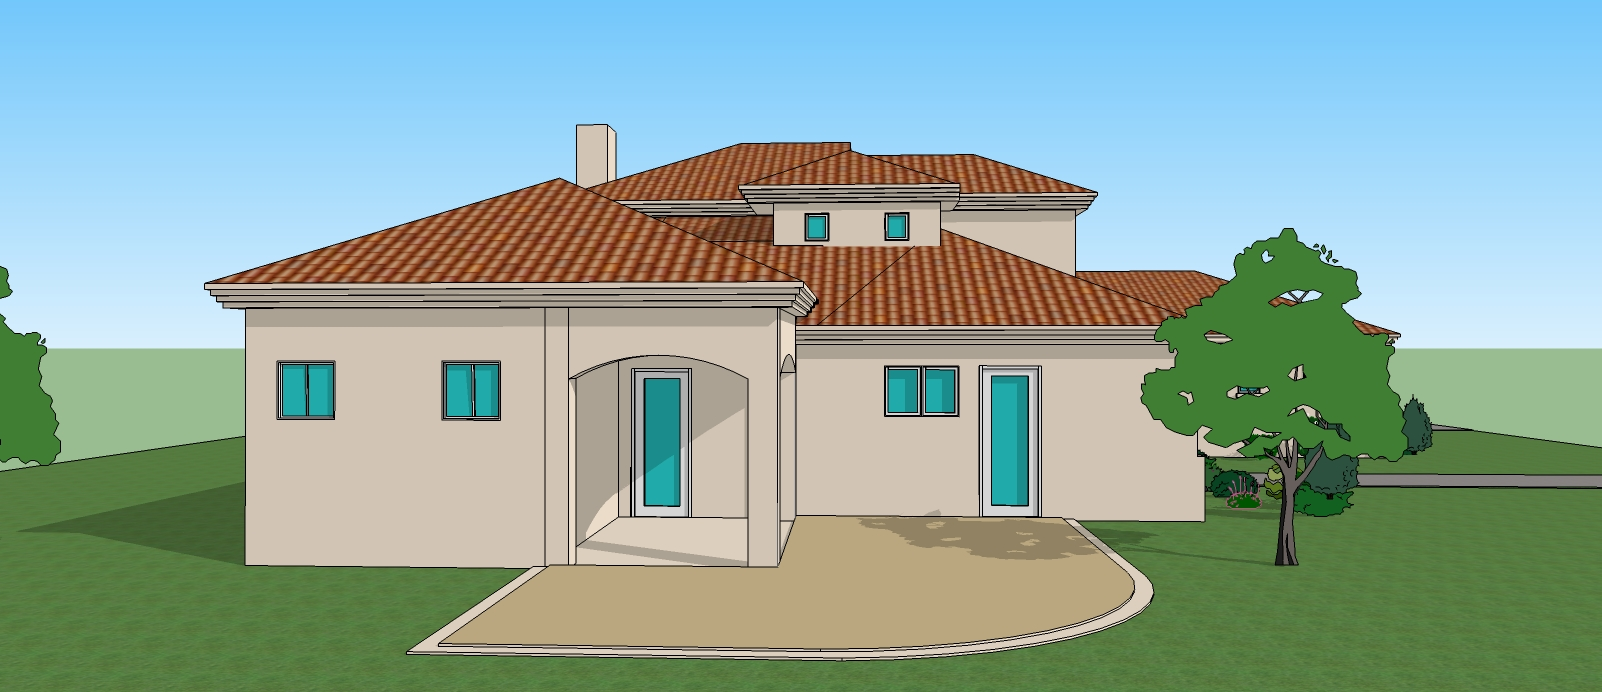 3D Architectural Home Design Drawings CAD Models Perspective Modeling 3 D Architectural Rendering Visualizations Illustration Renderer Fort Smith Arkansas Fayetteville Columbia O'Fallon Missouri Lees Summit Saint Joseph Charles Sioux City Iowa Waterloo Kenosha Wisconsin Racine Pasadena Grand Prairie Texas McKinney McAllen Texas Mesquite Beaumont Waco Carrollton Overland Park Kansas